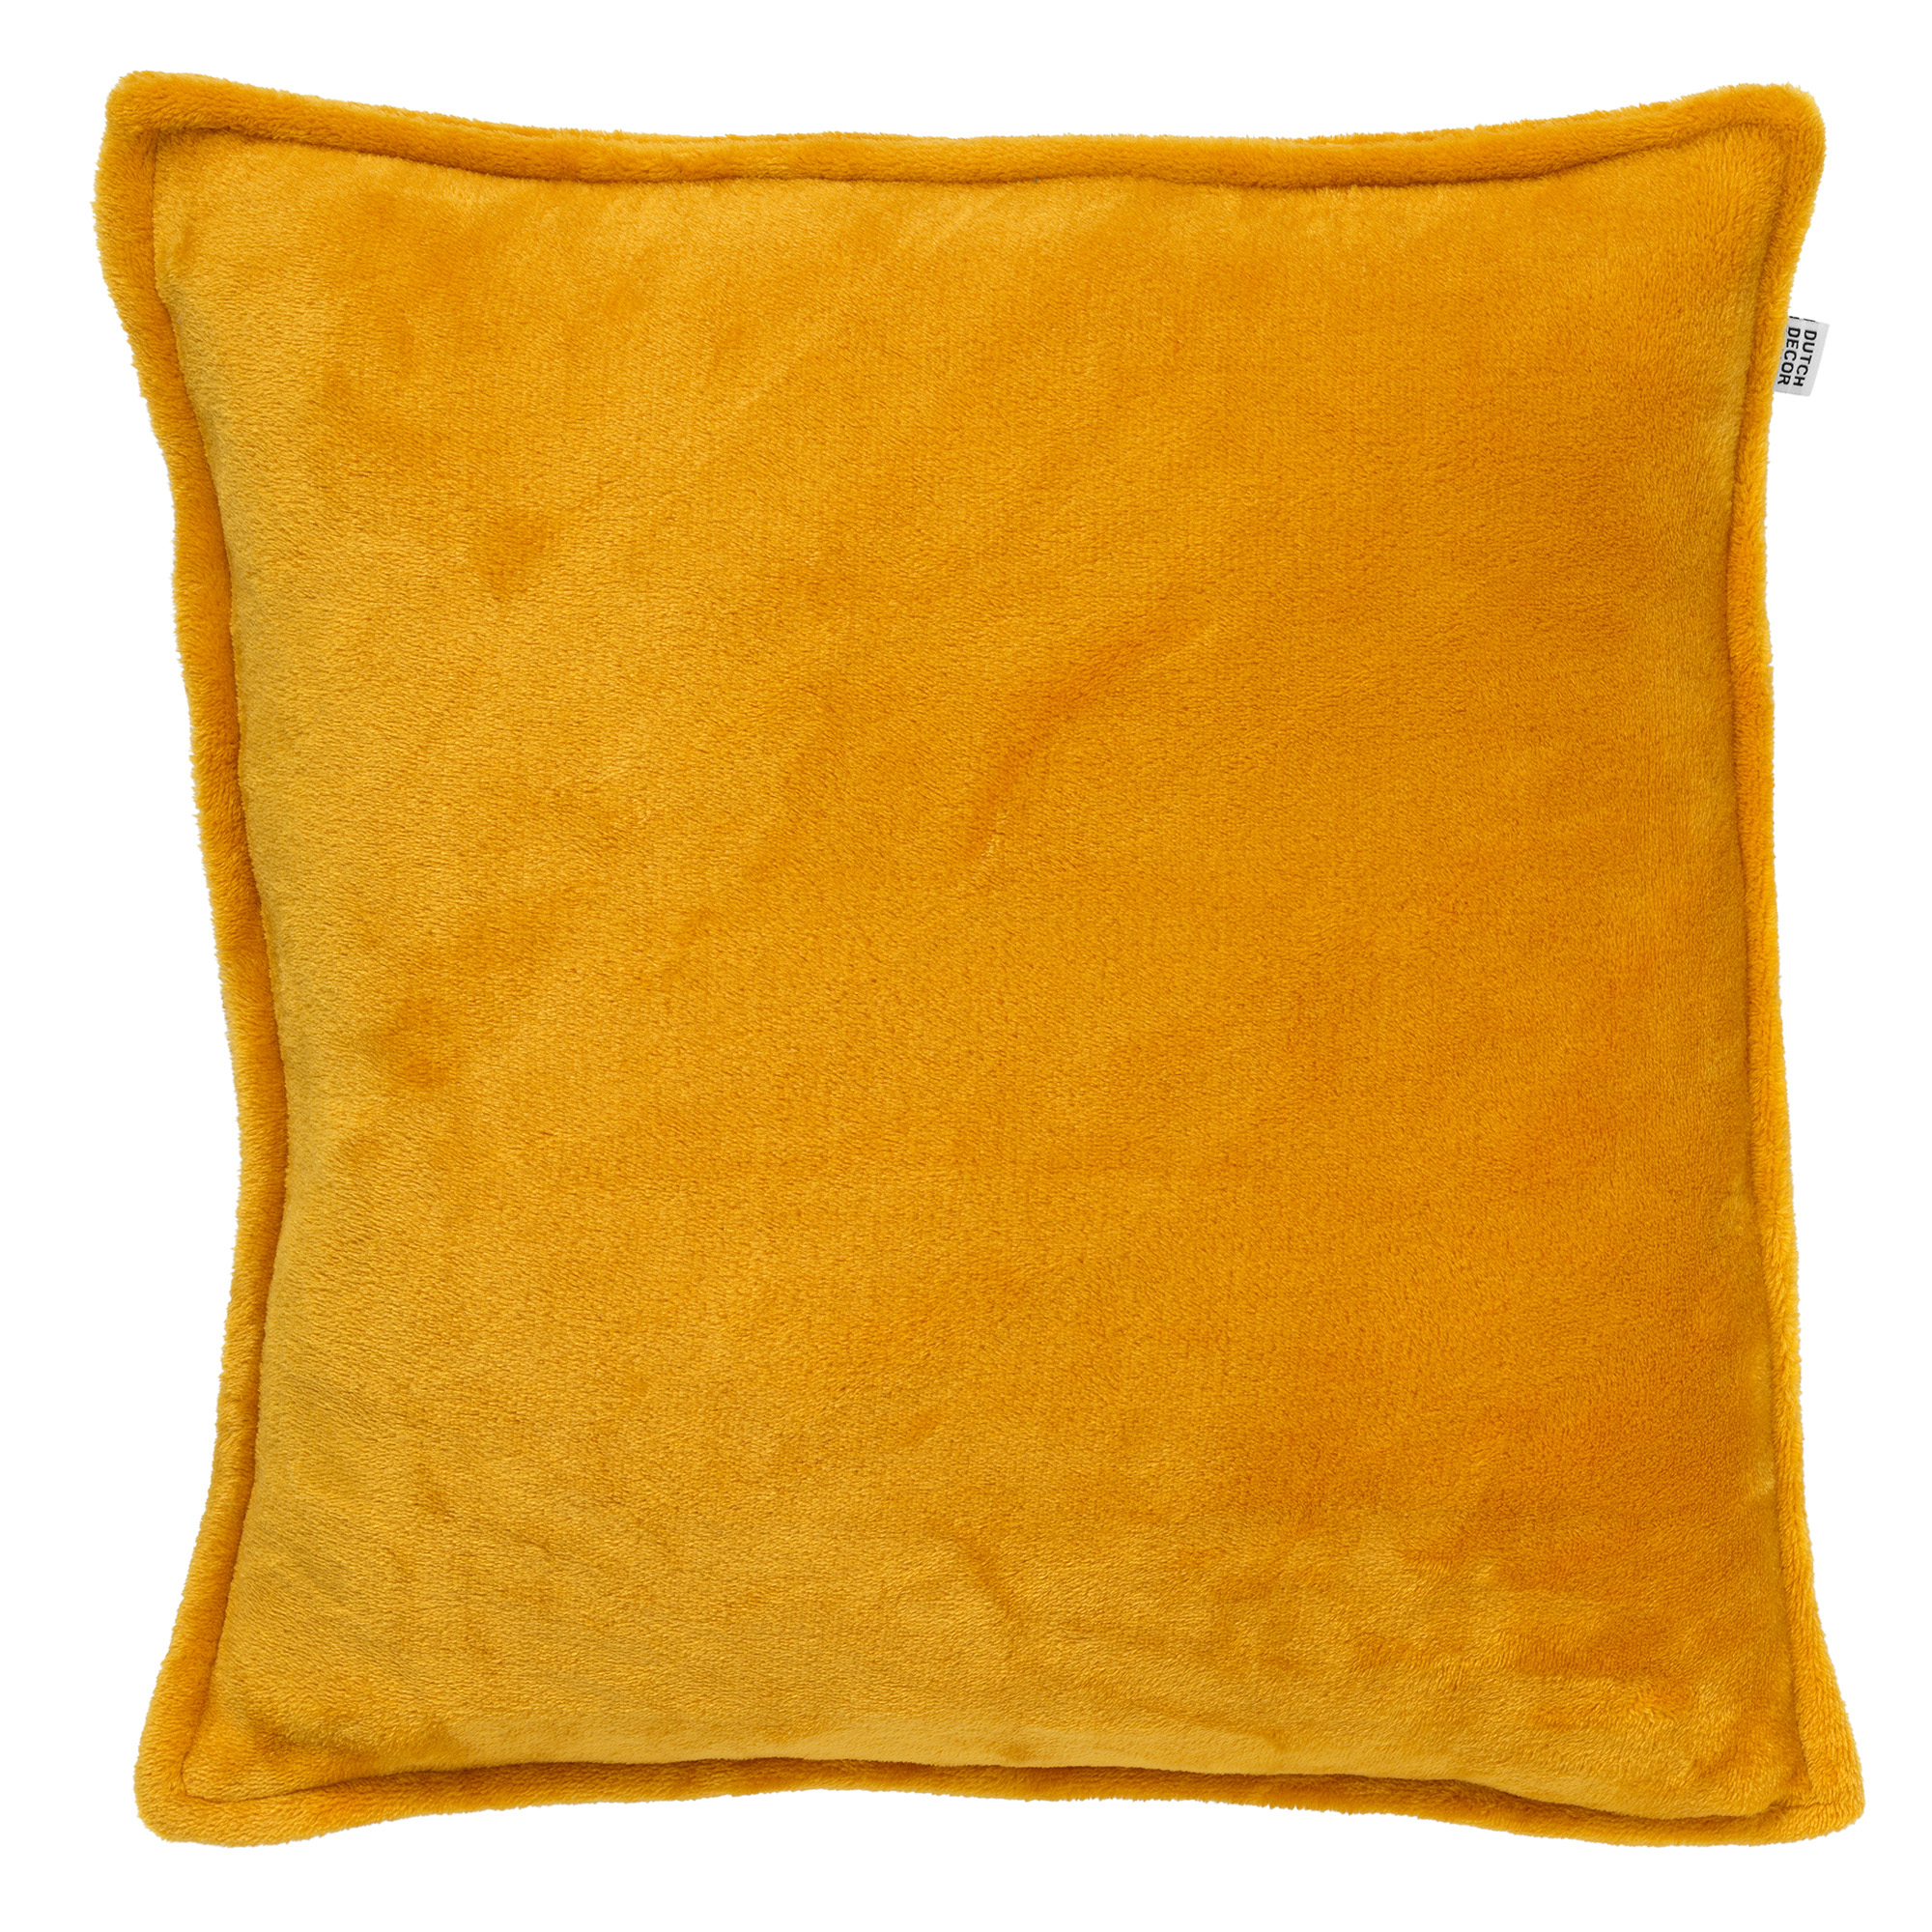 CILLY - Sierkussen van fleece Golden Glow 45x45 cm